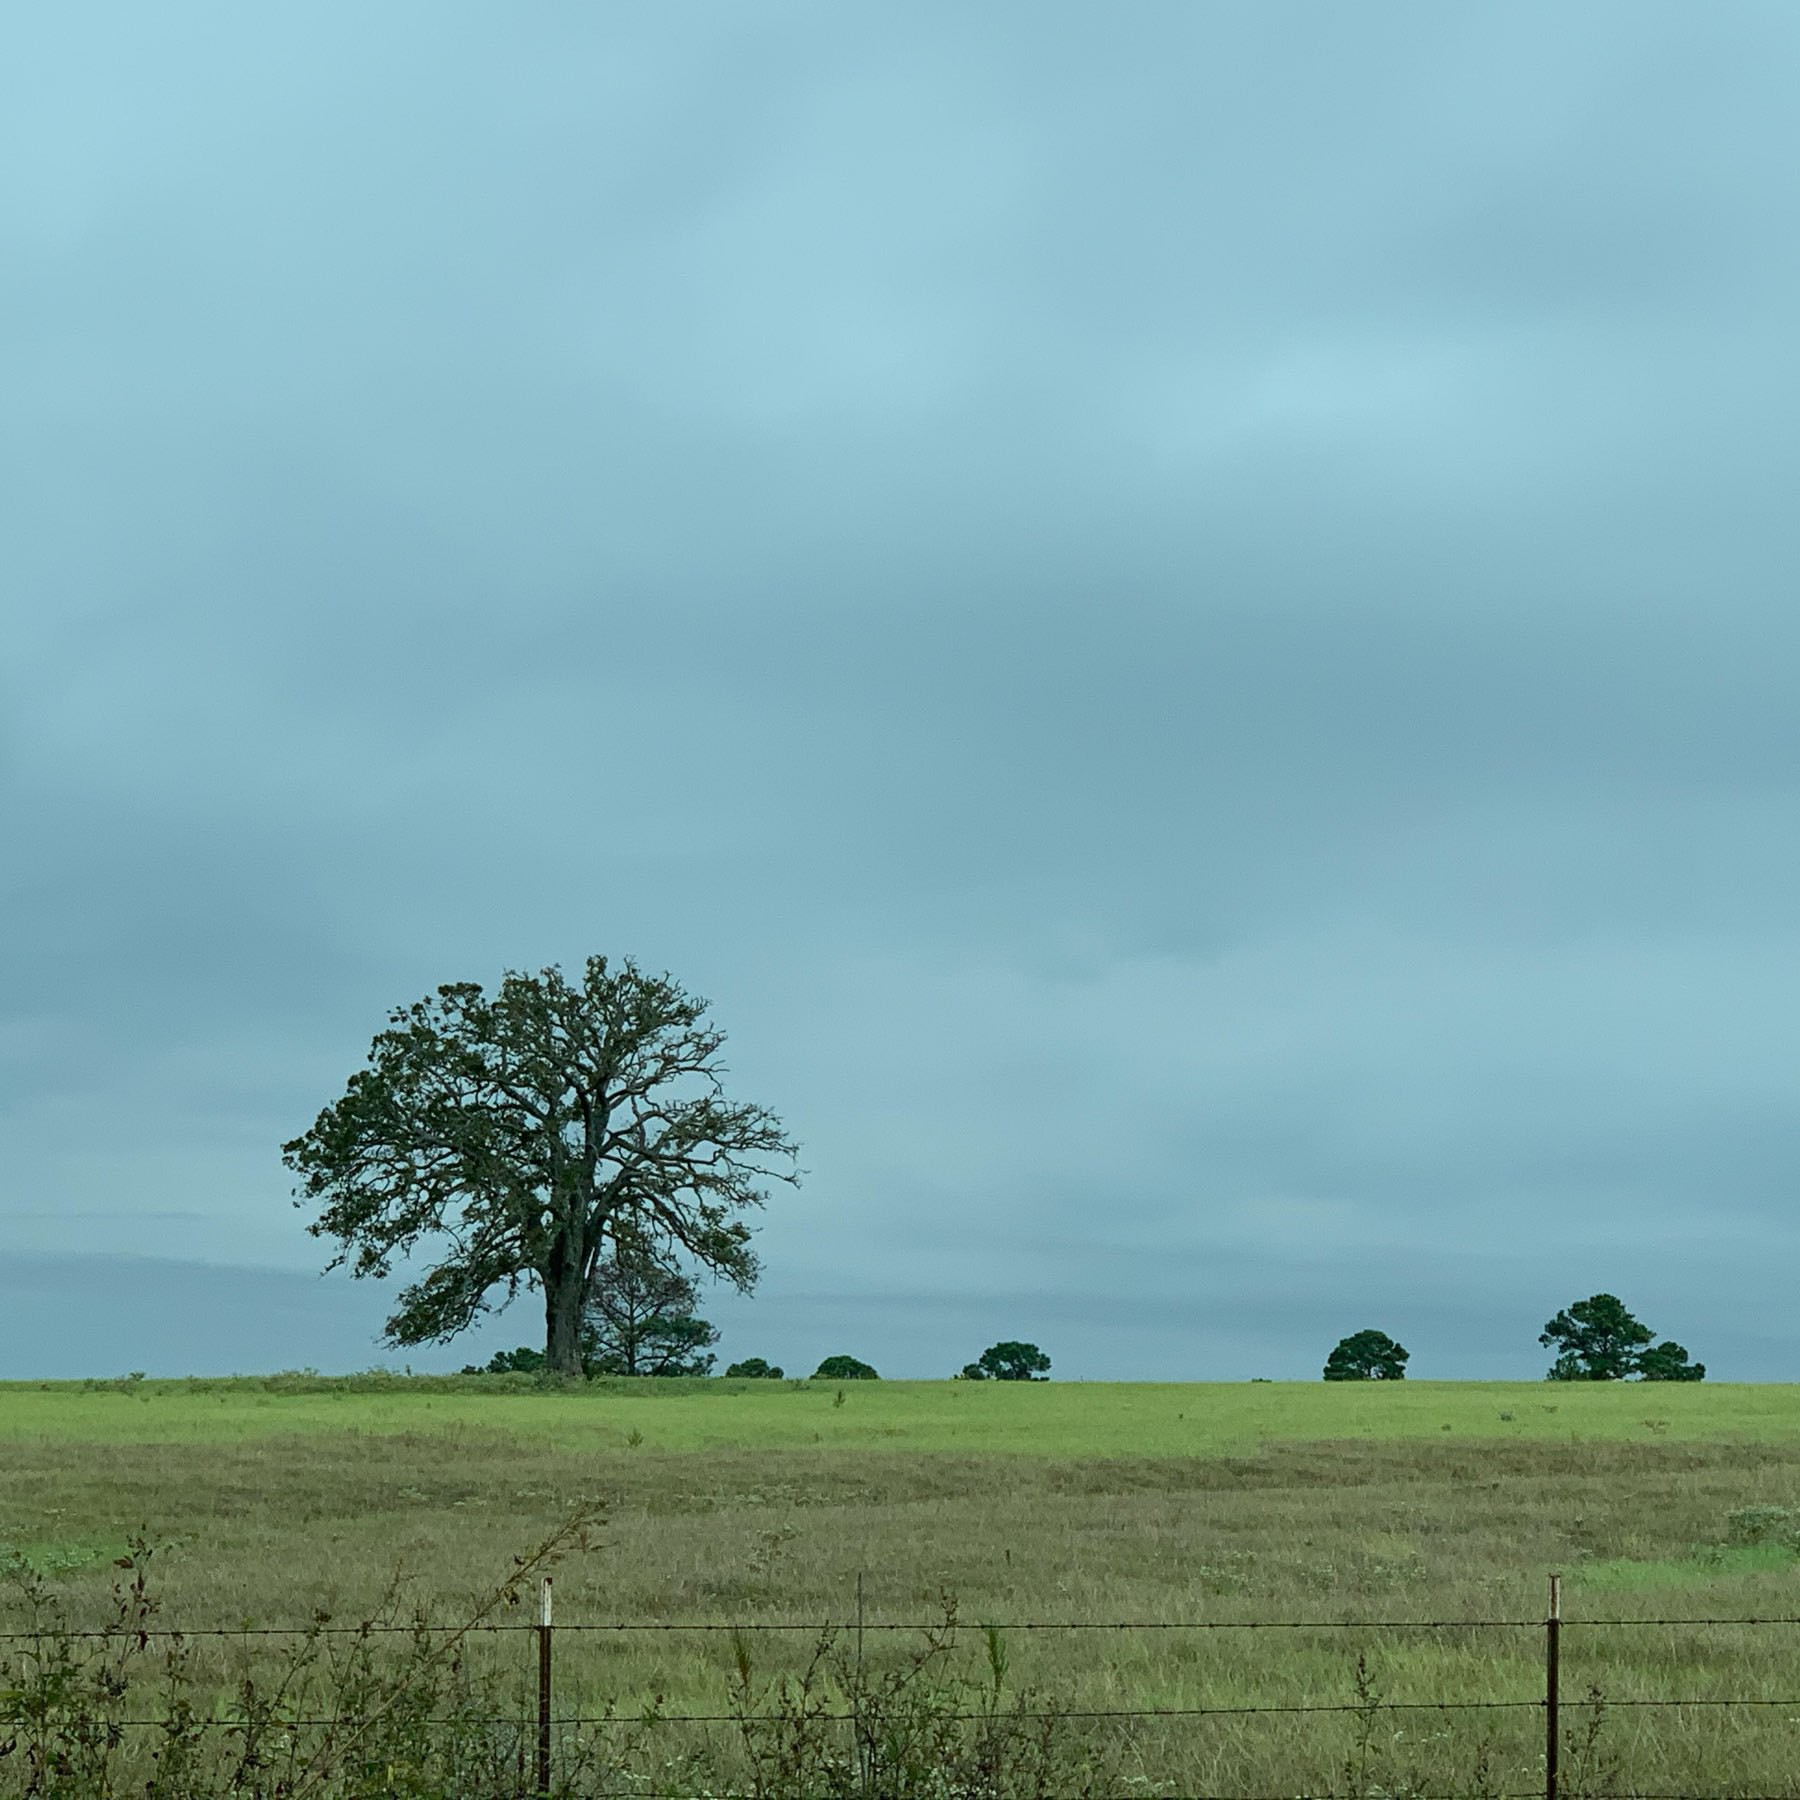 Dead tree stands in an open cow pasture against a grey sky.